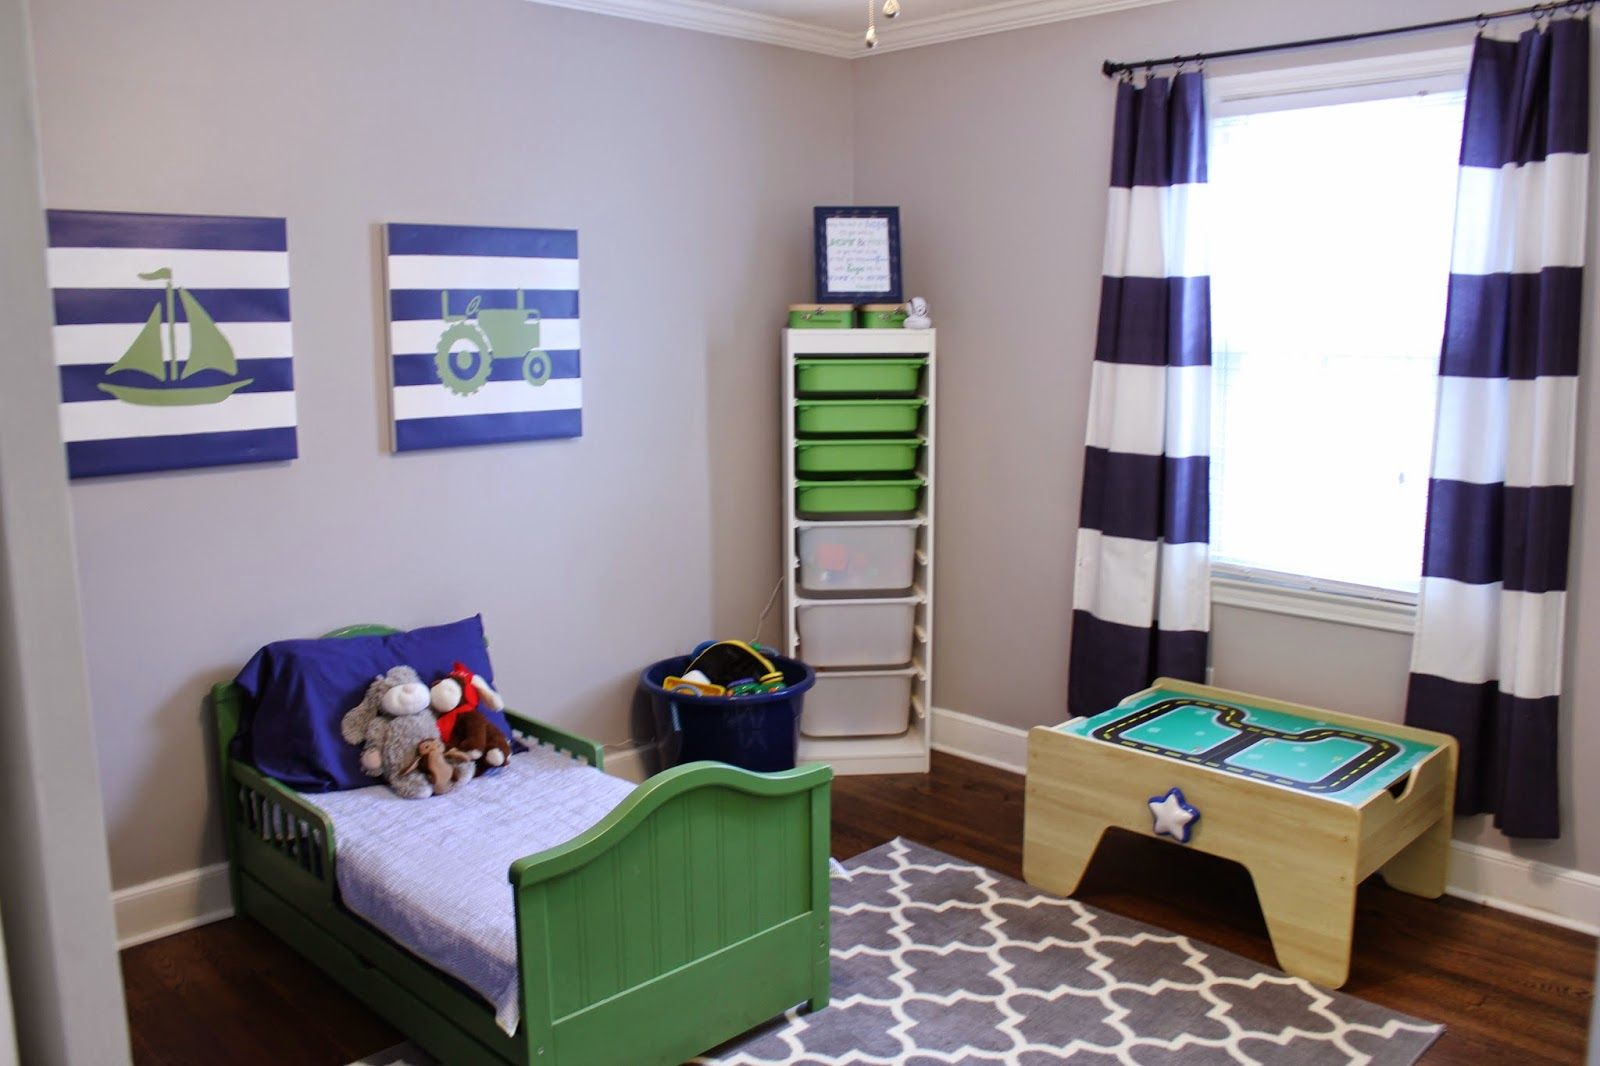 Bedroom designs for kids boys - Navy Blue Green Toddler Boy Bedroom Transportation Theme Room